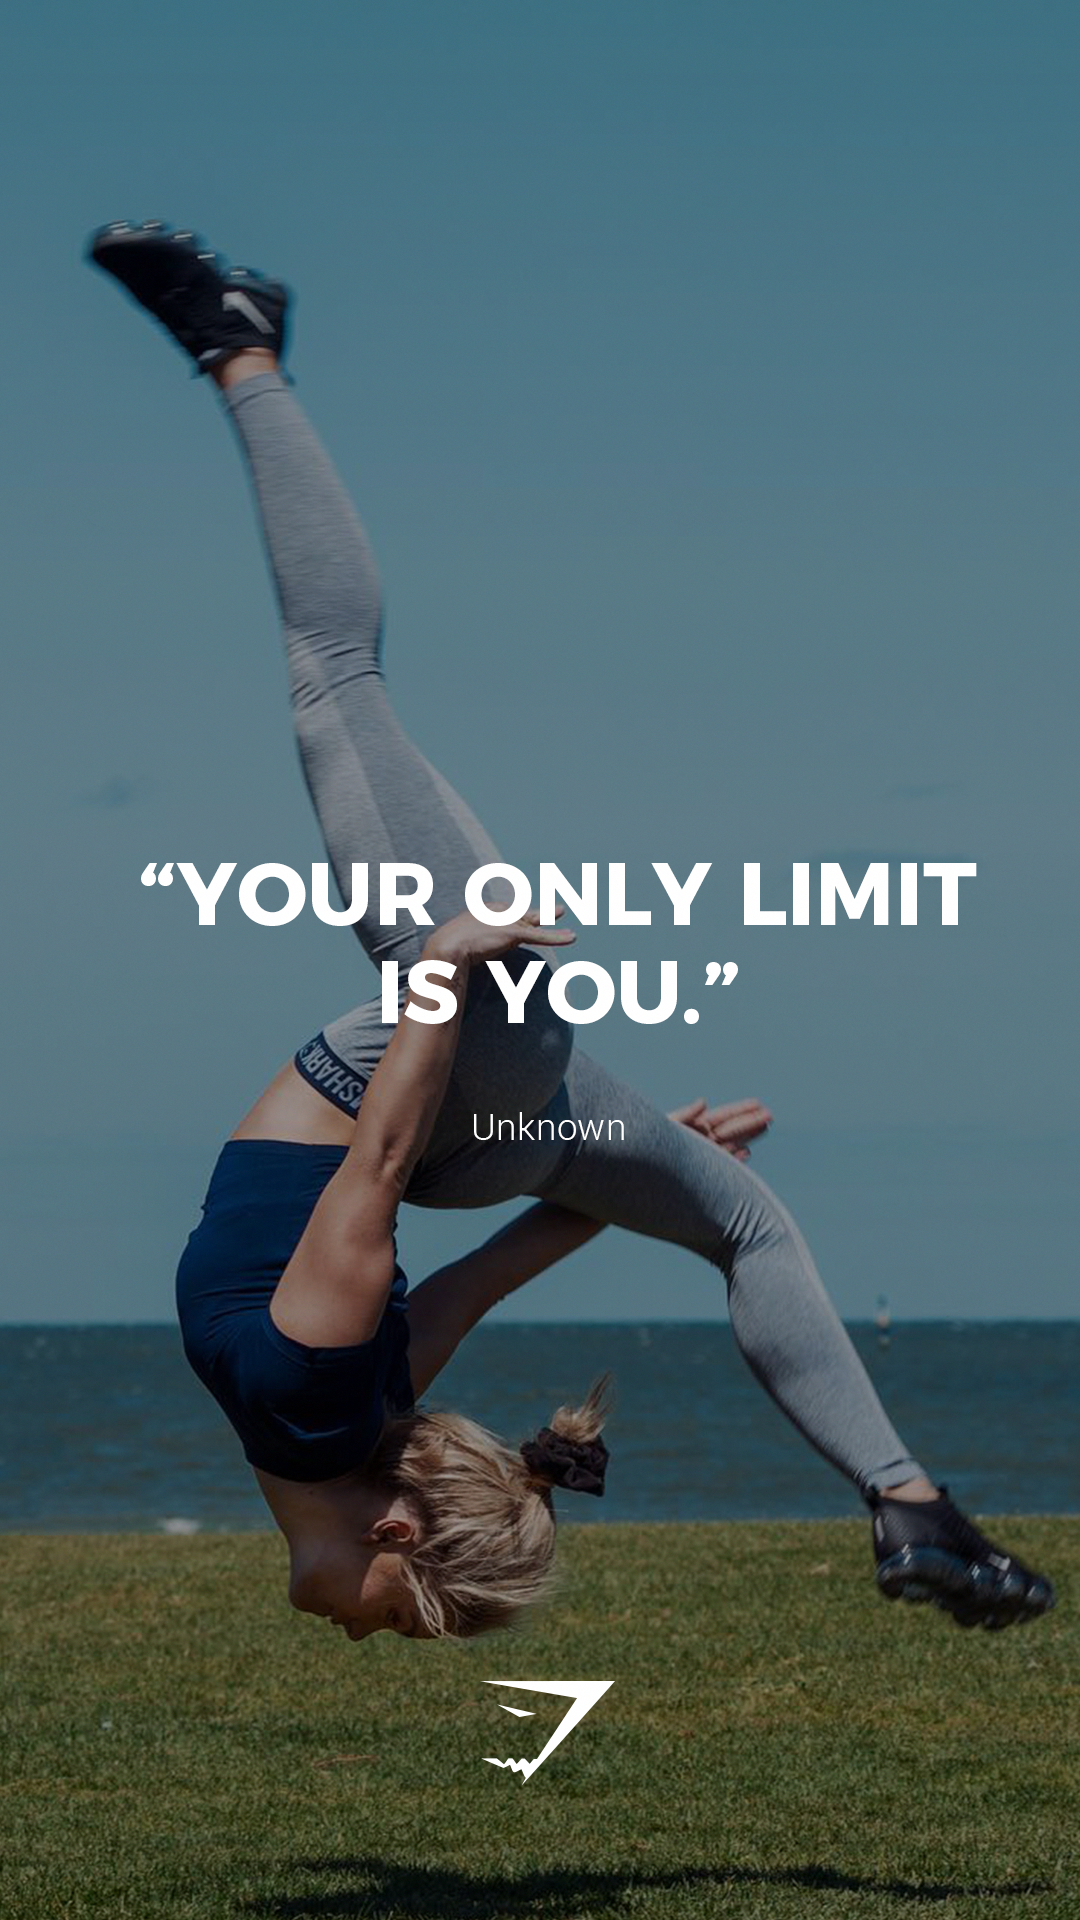 """Your only limit is you."" - Unknown. #Gymshark #Quotes #Motivational #Inspiration #Motivate #Phrases..."